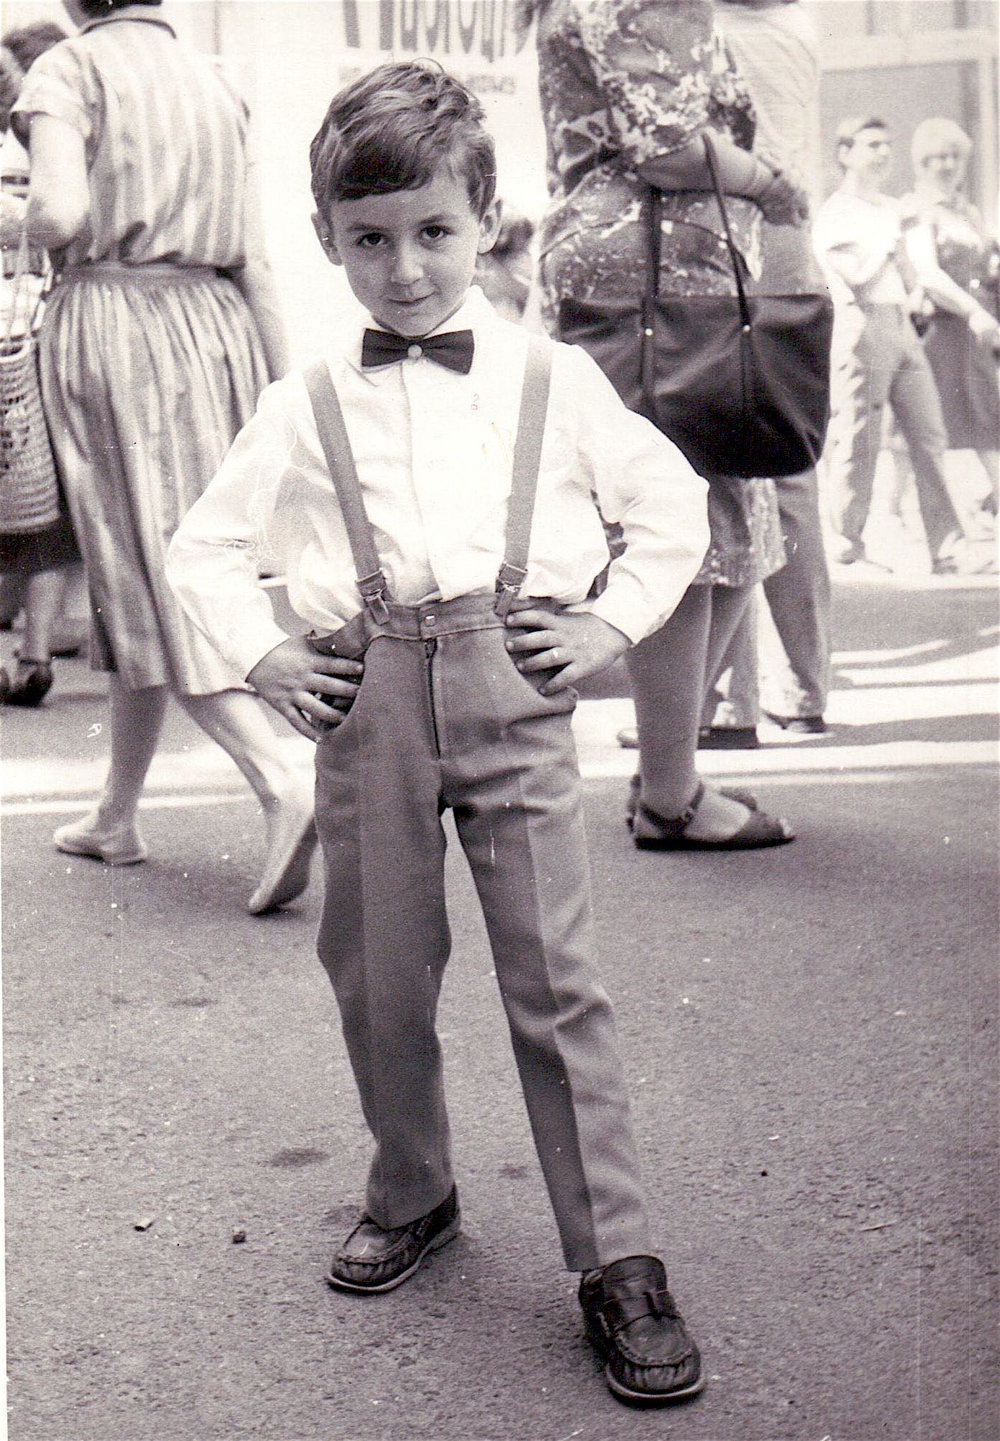 Kostya Kimlat as a child in Kiev, Ukraine in the Soviet Union.